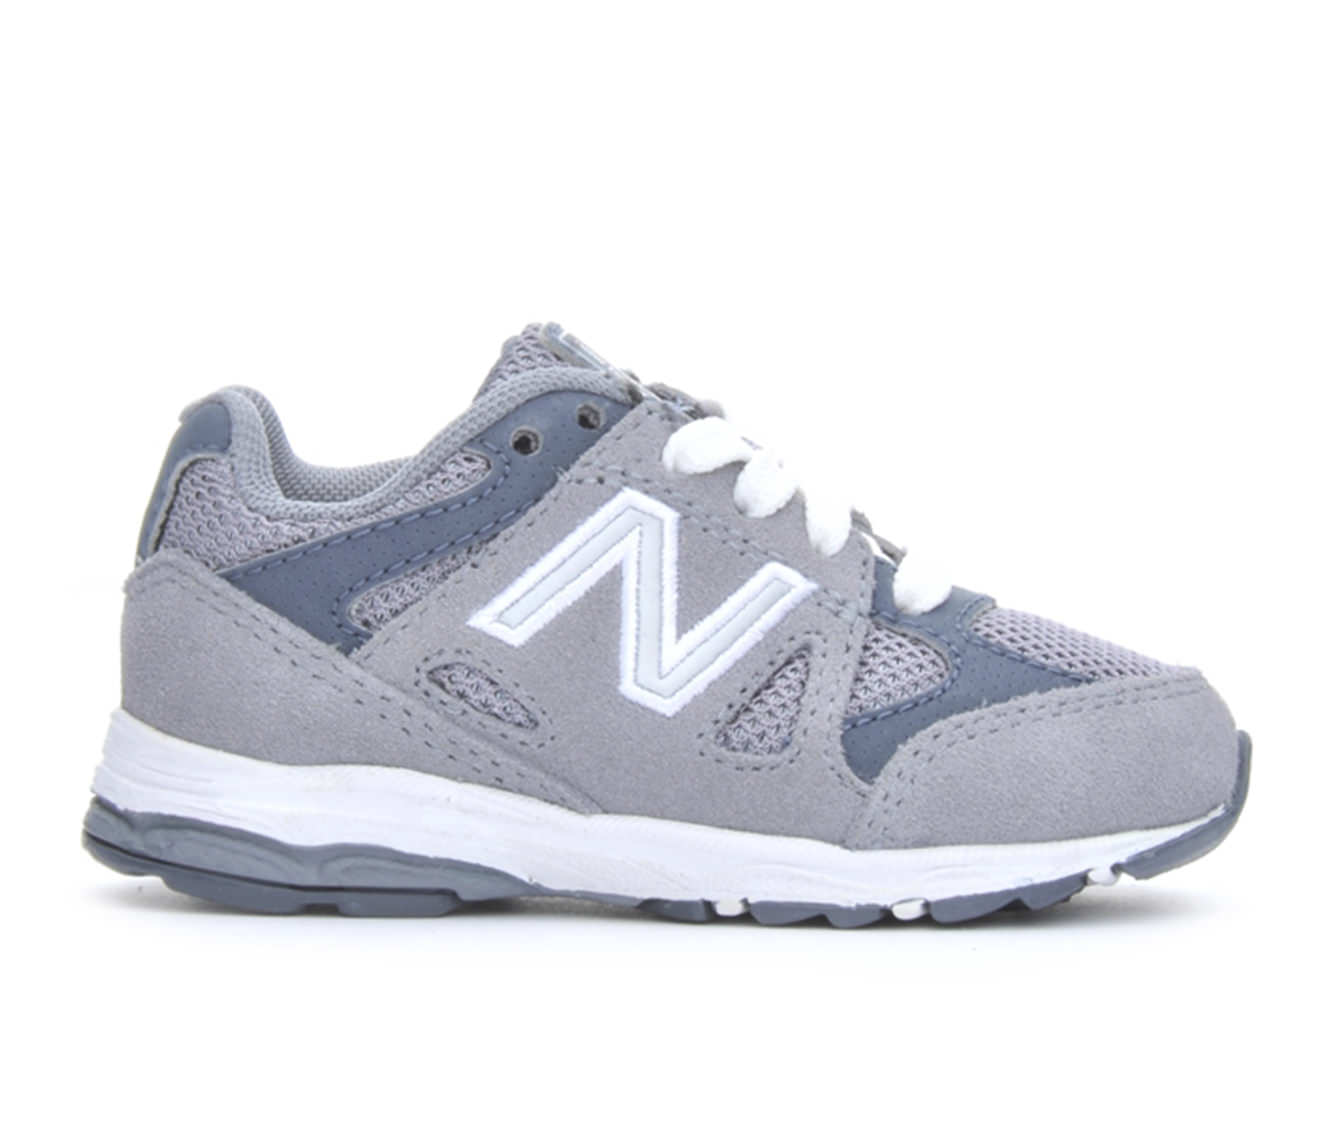 Boys' New Balance Infant KJ888GYI Sneakers (Grey)